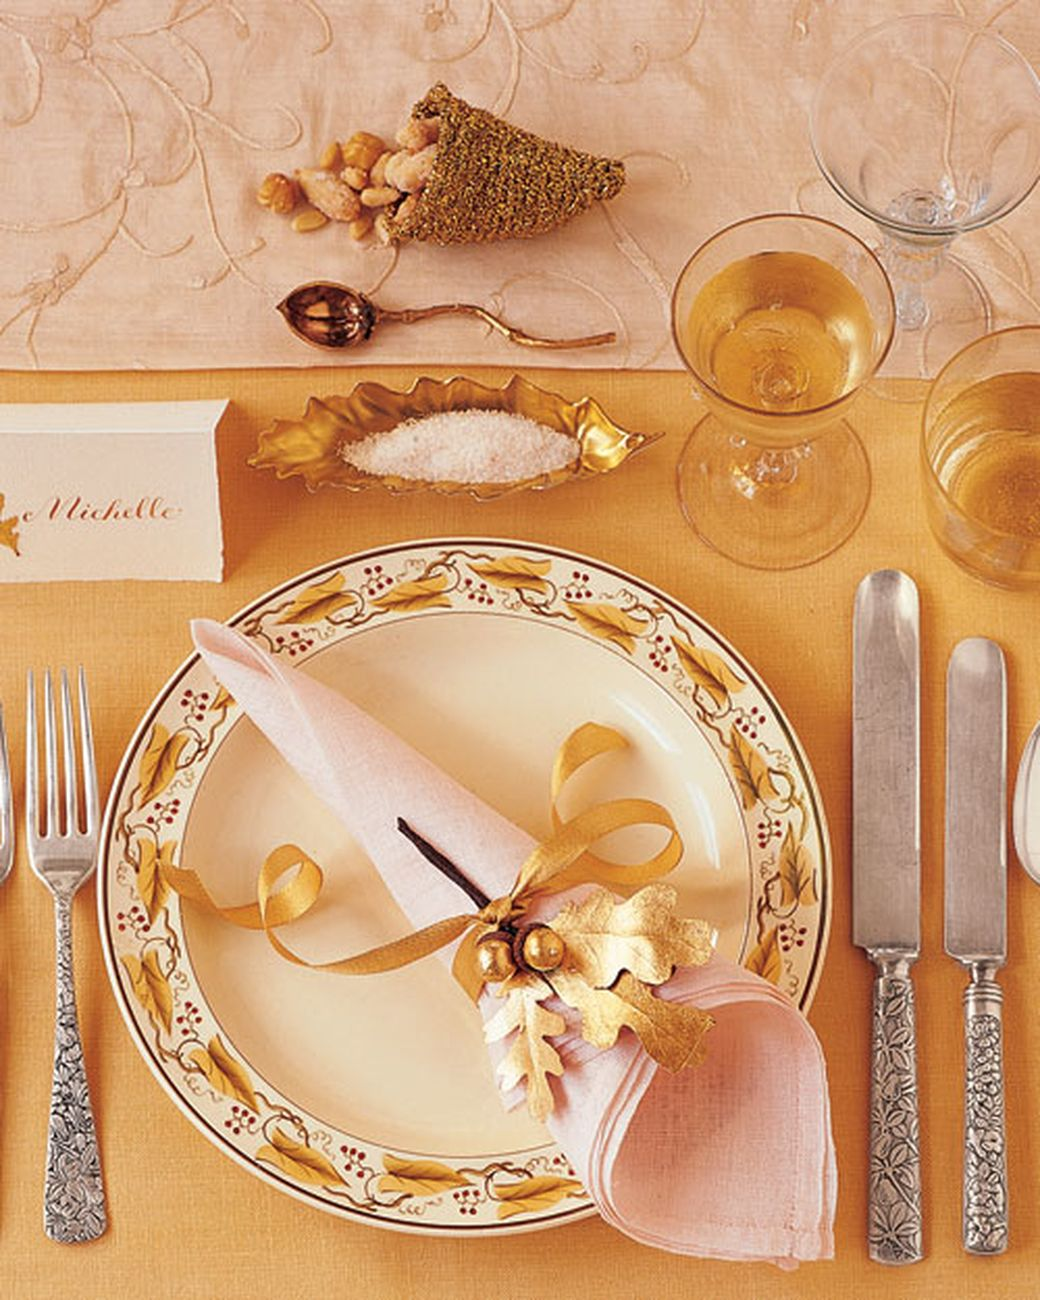 Oak-Leaf Cornucopia | Martha Stewart Living - This Thanksgiving, our cornucopia makes an impressive statement on any table. We coated it with shimmering floral spray and a wreath of gold-leafed oak leaves and acorns.